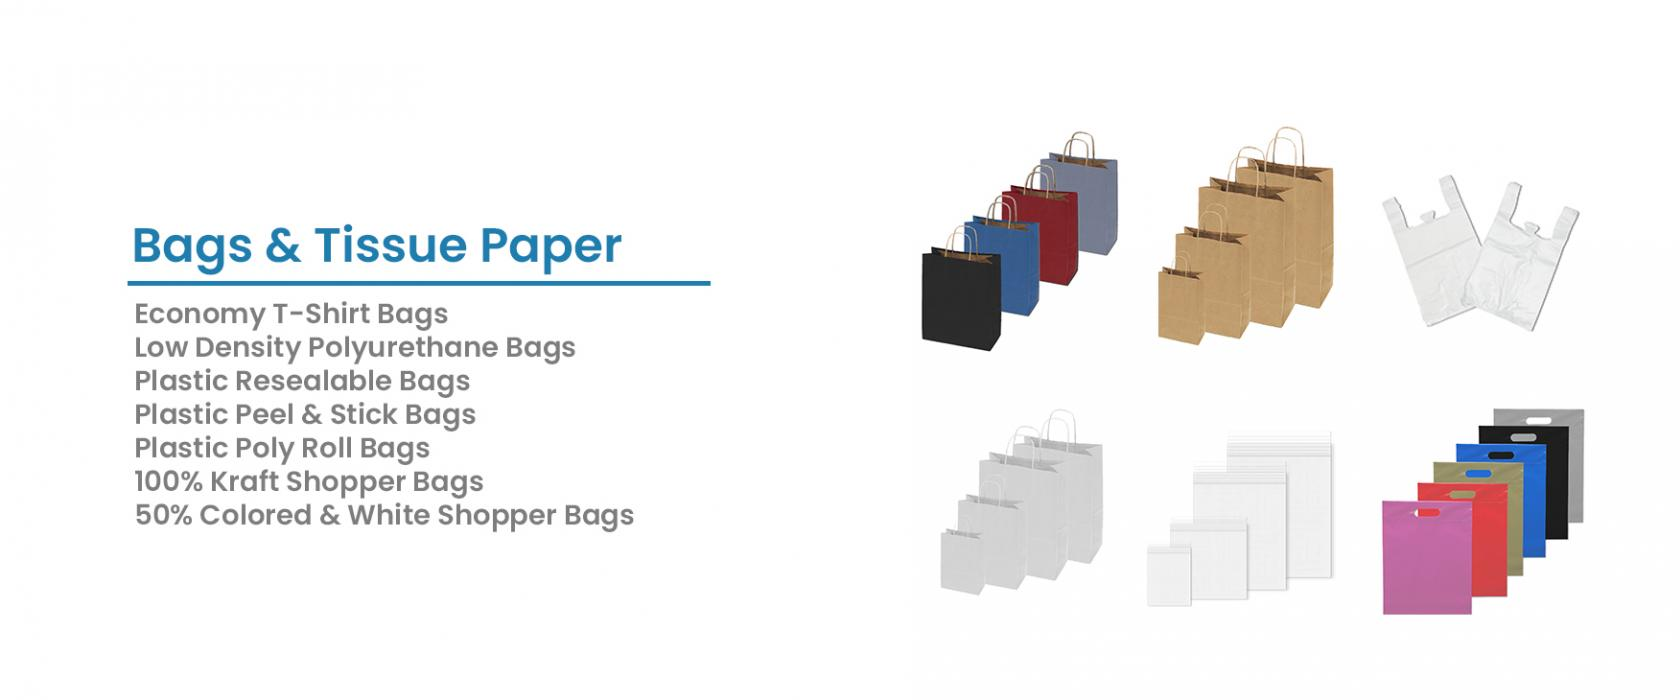 Bags & Tissue Paper